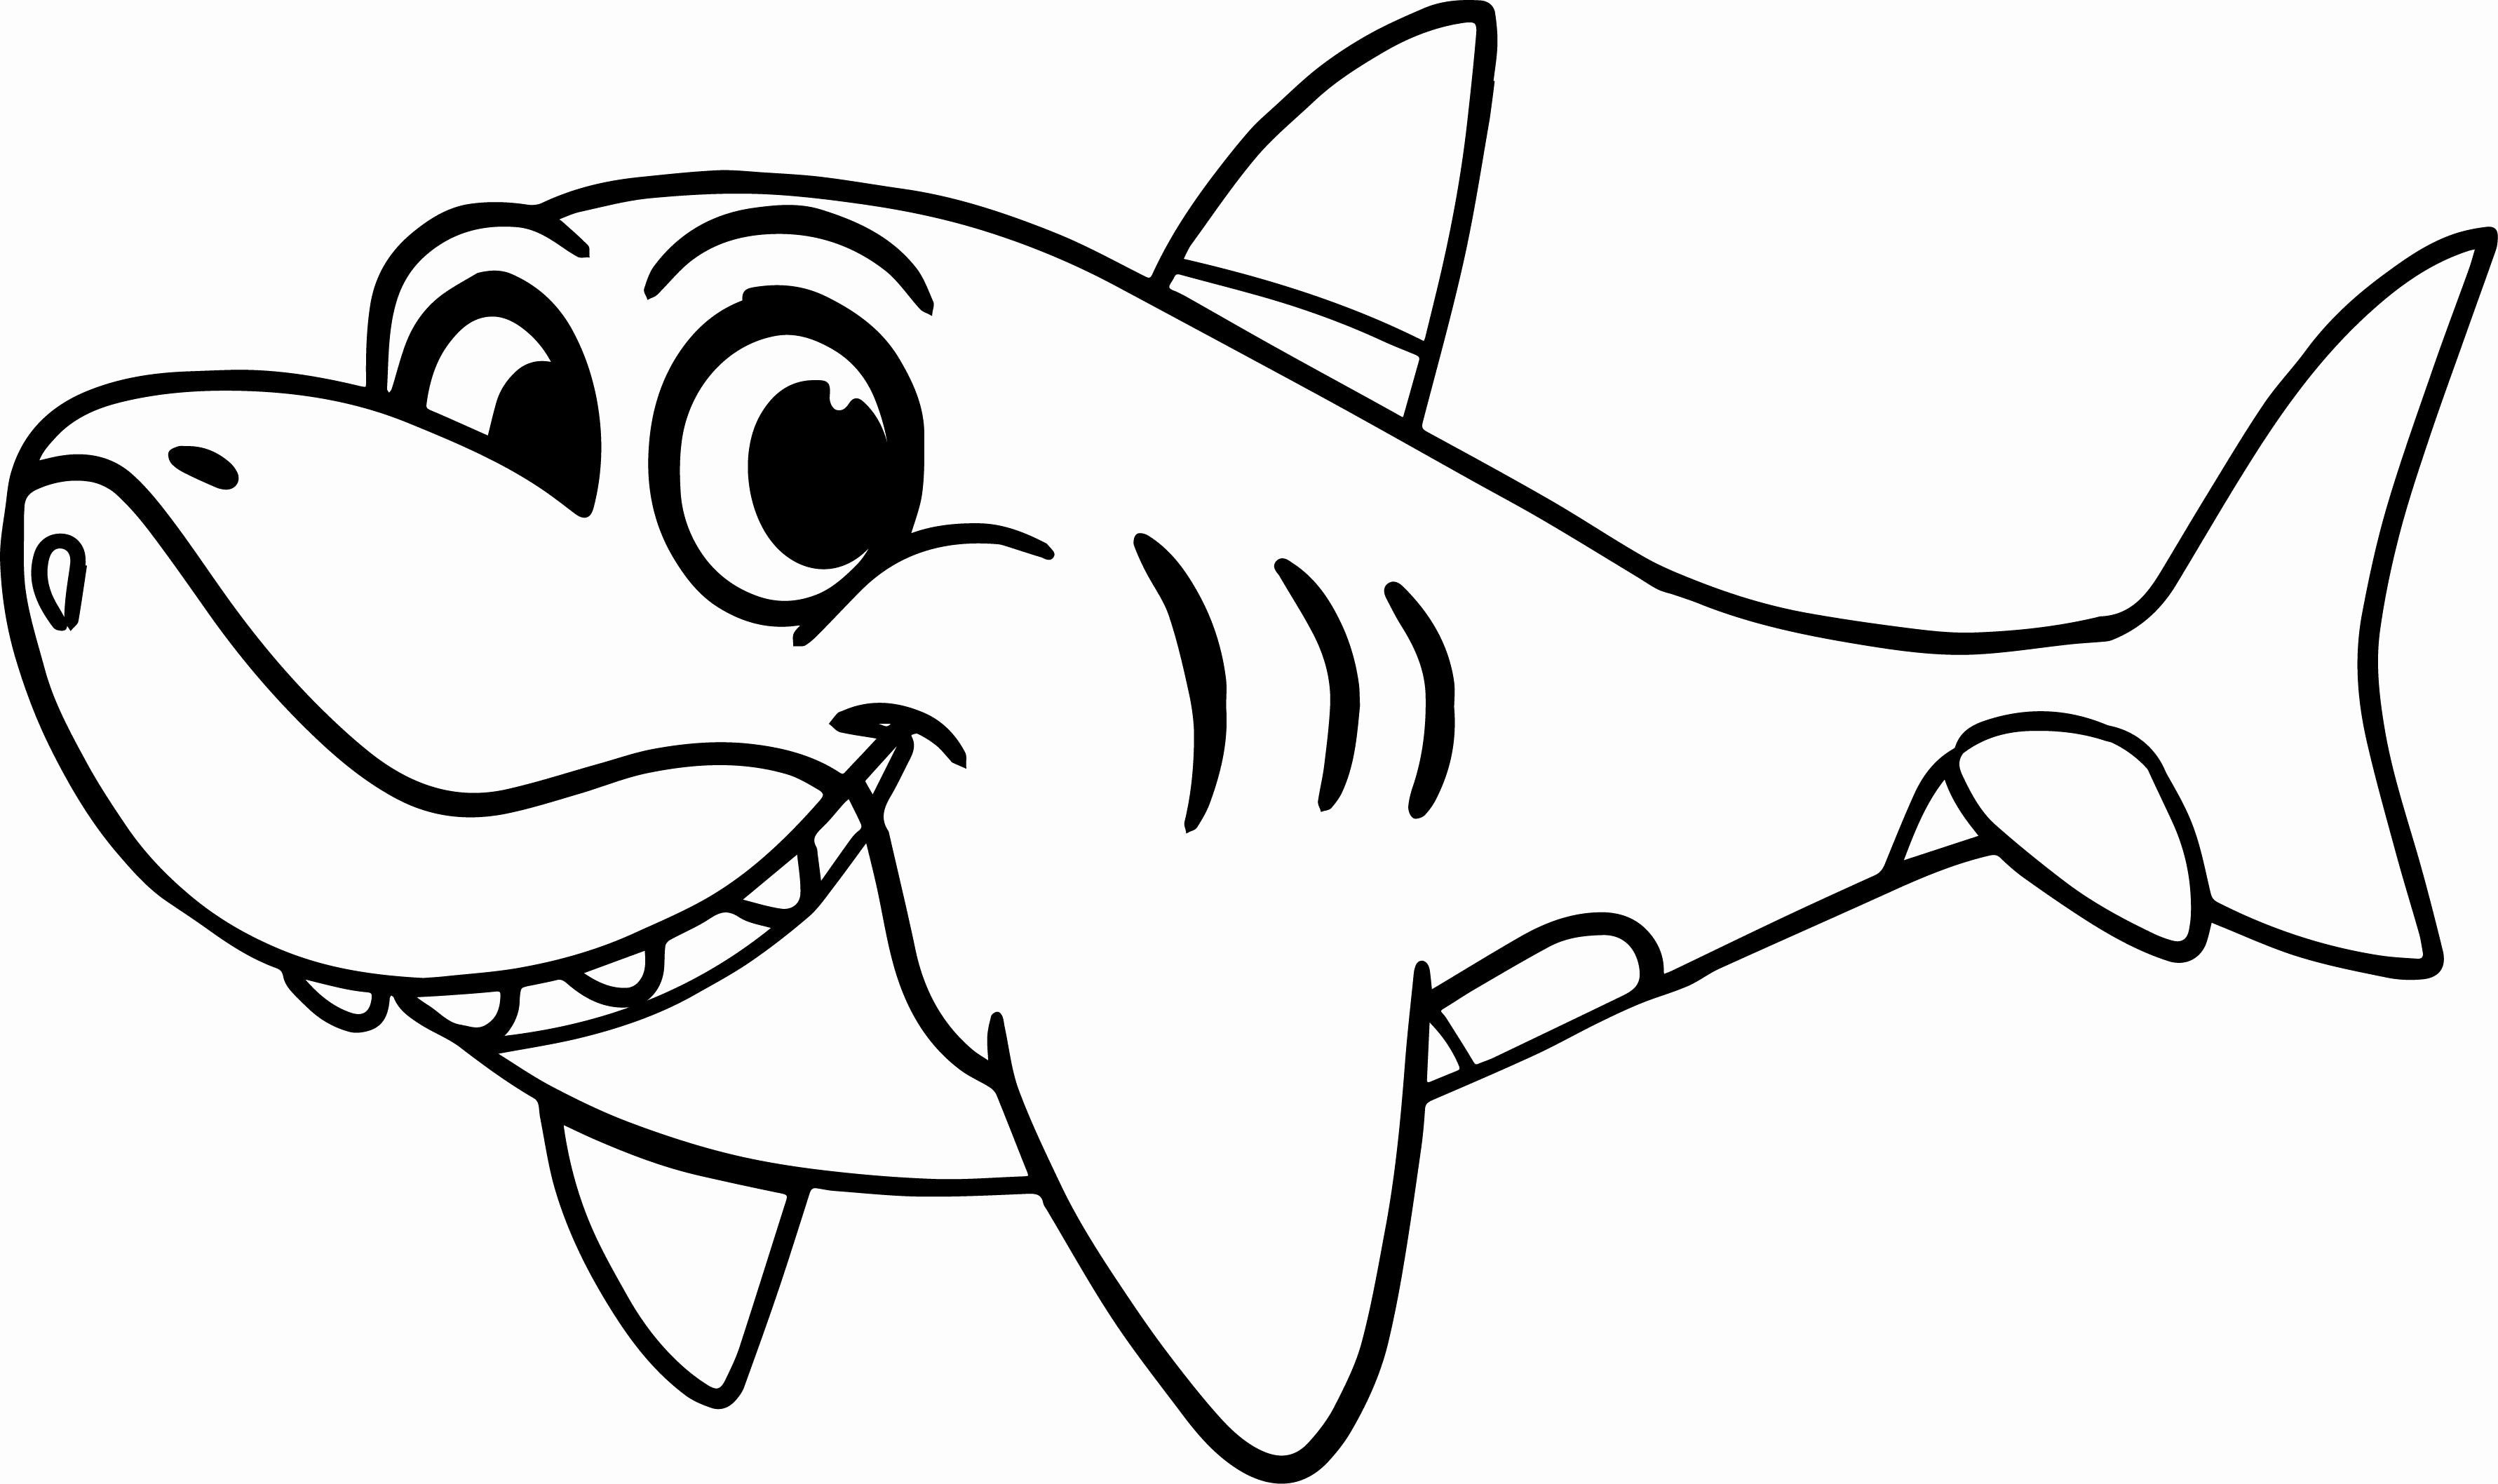 Pin by Heather O'Brien on images and ideas | Shark coloring pages, Cartoon coloring  pages, Cute coloring pages